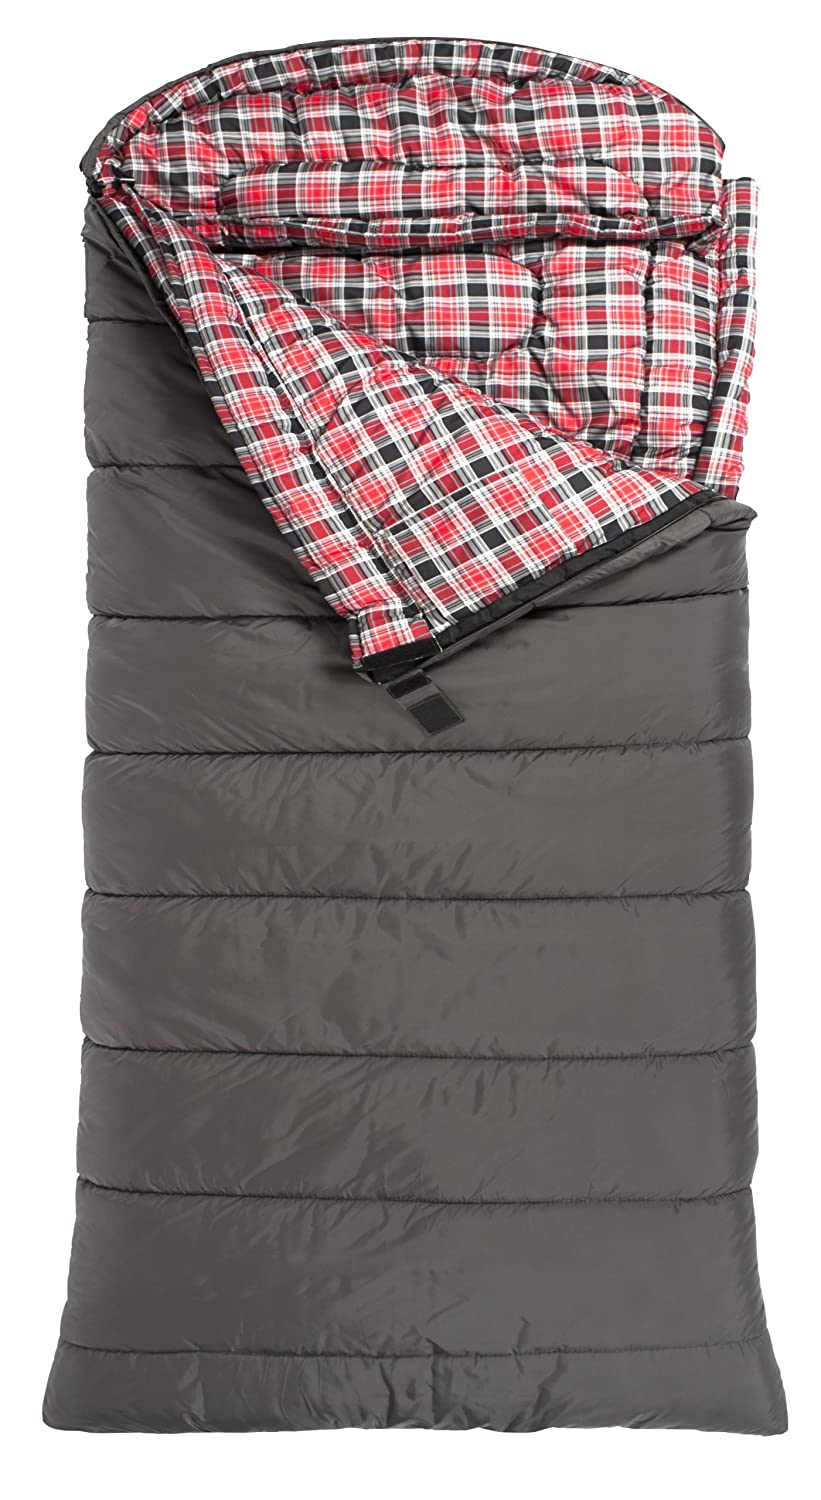 TETON Sports Celsius XXL 18 Degree Sleeping Bag Review - Traveling Monarch